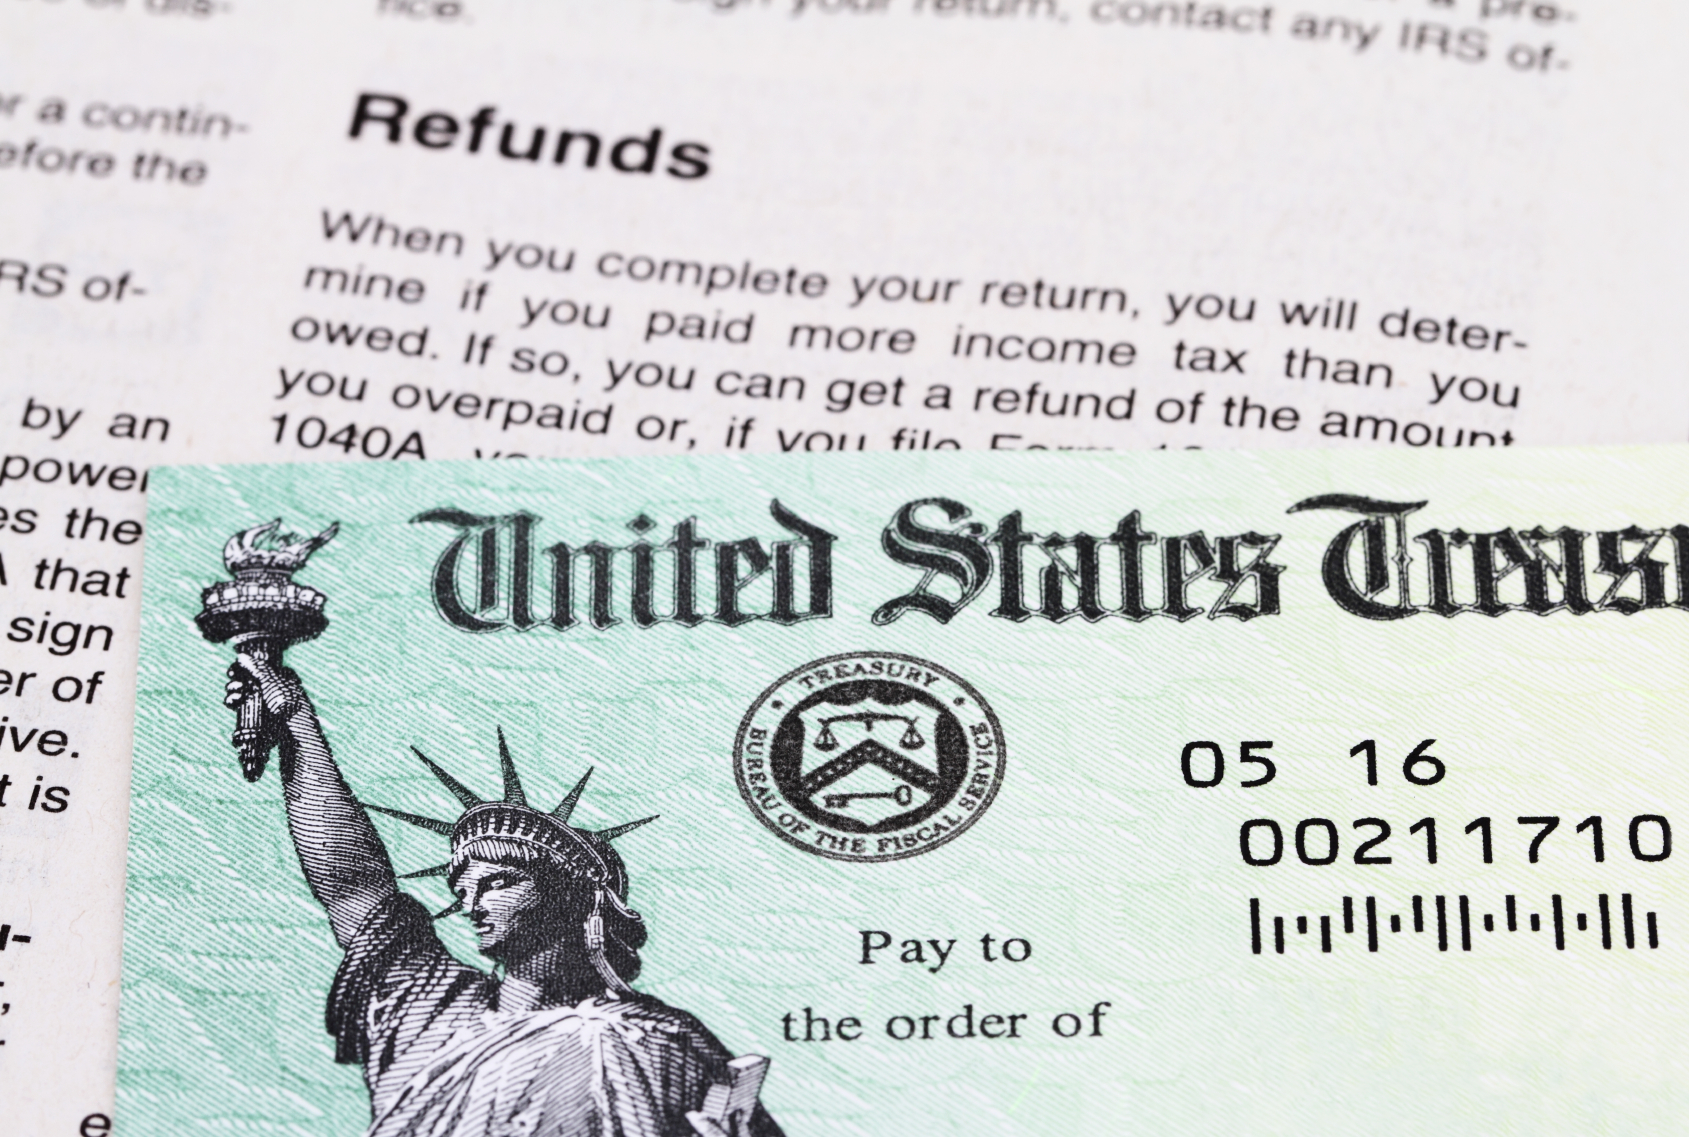 6 Pointers On Handling A Irs Tax Refund For A Better